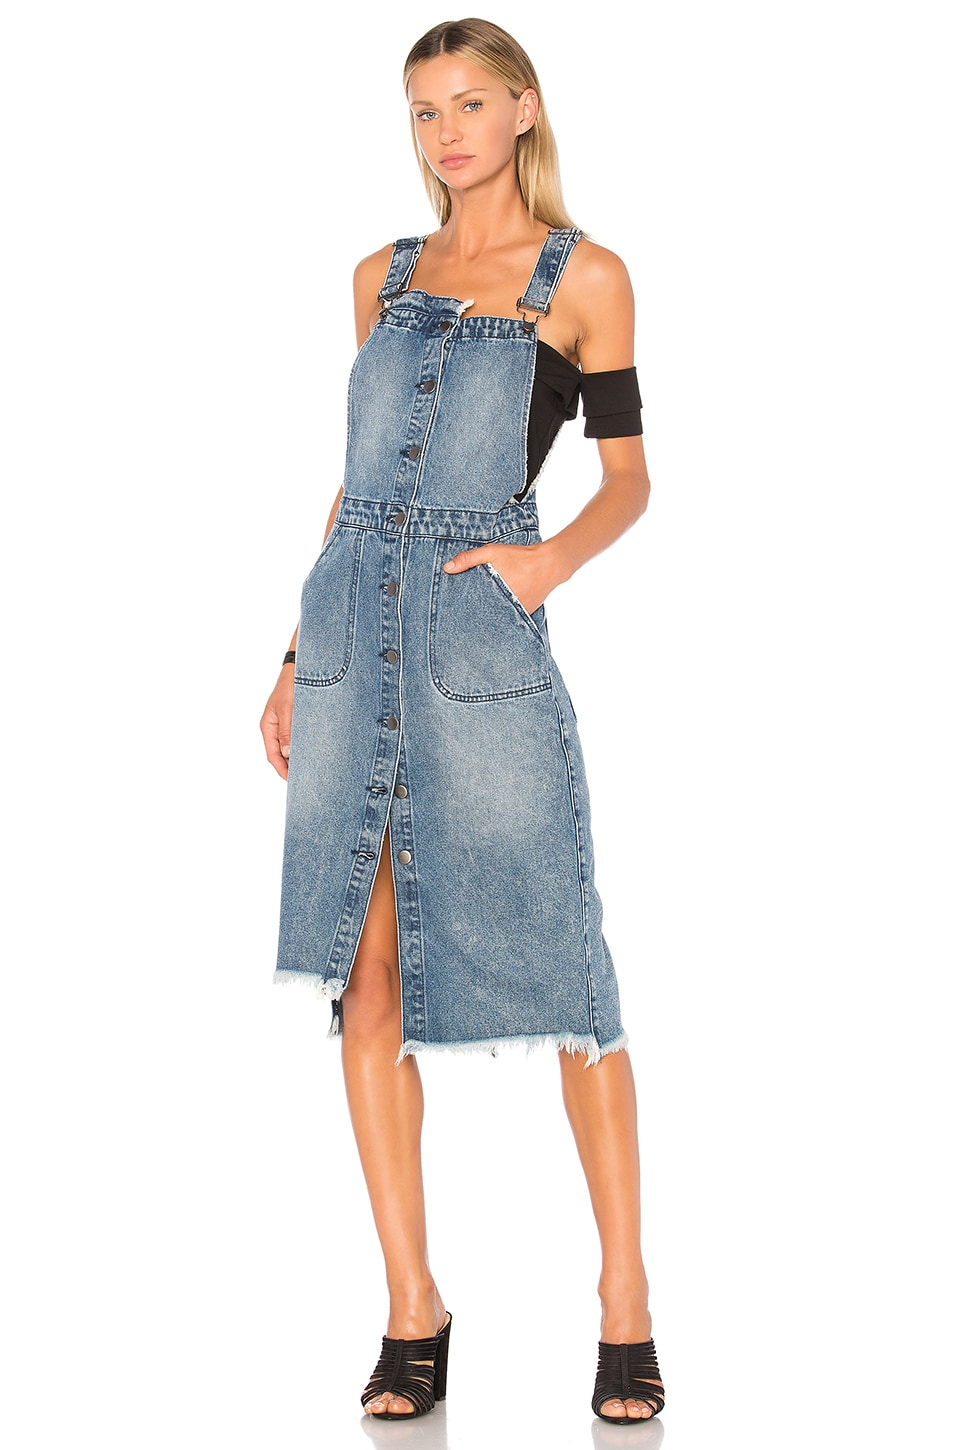 Dungaree Dress by One Teaspoon